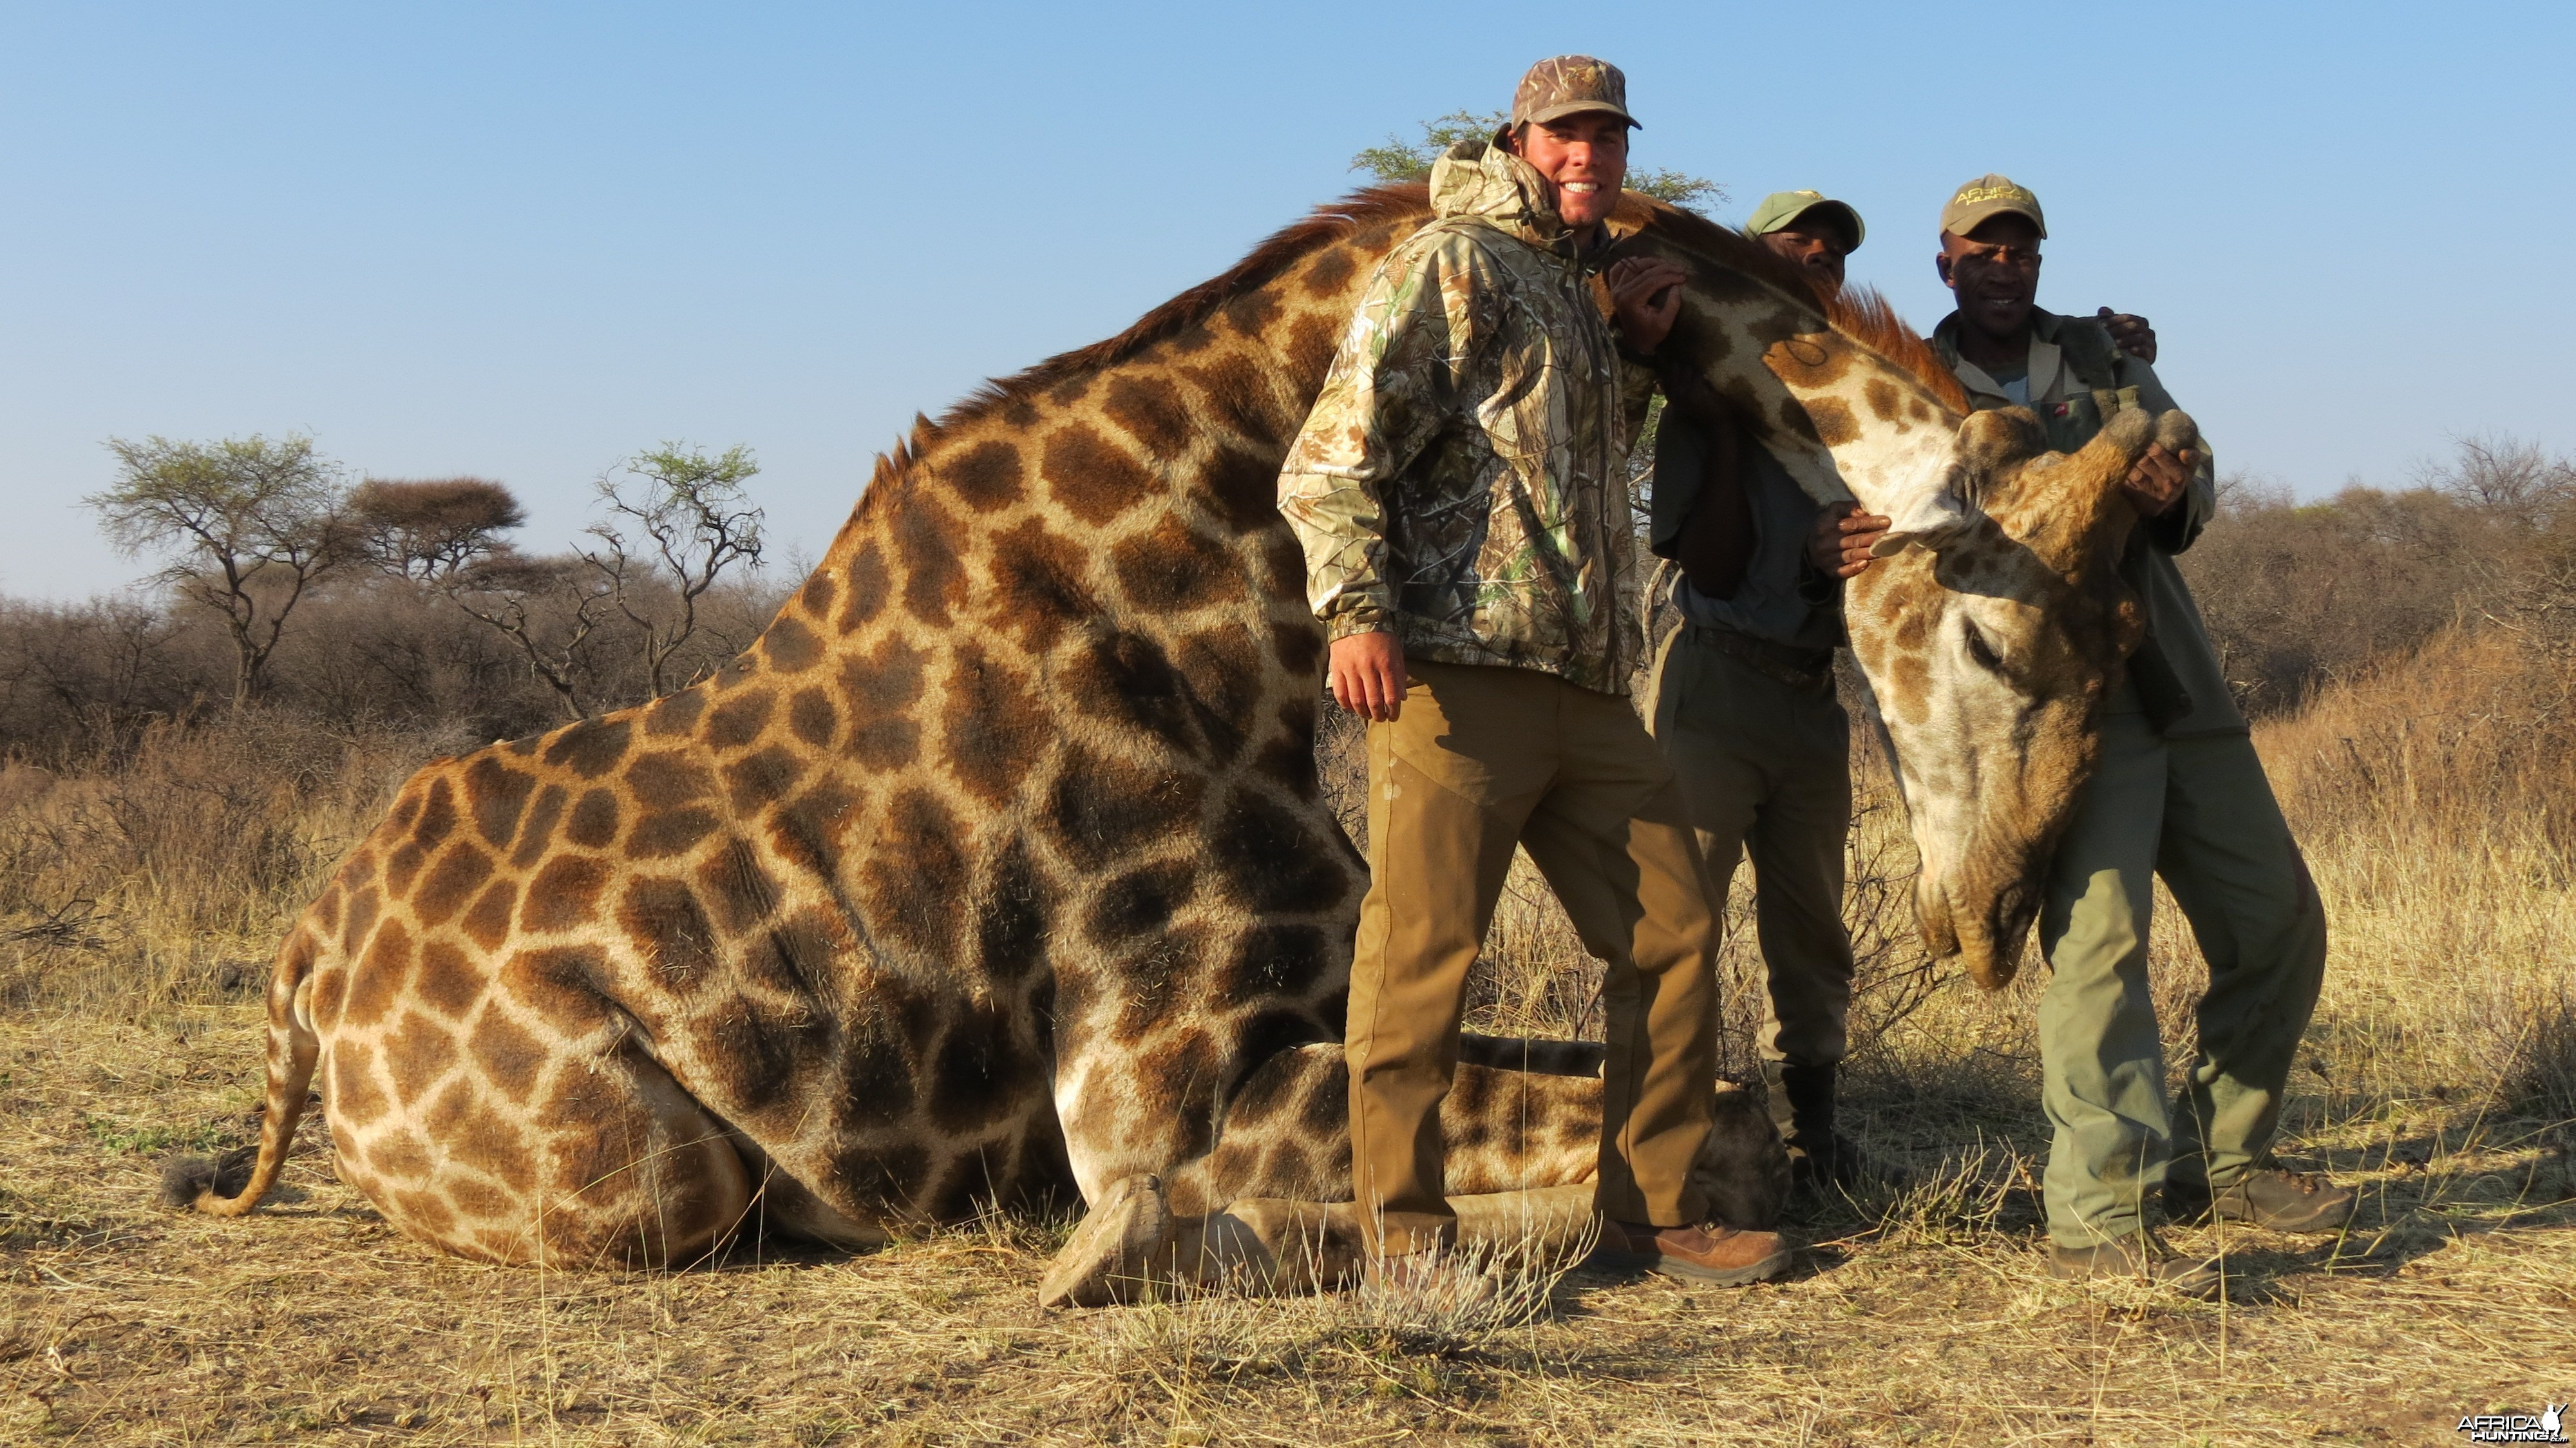 Giraffe hunted with Ozondjahe Hunting Safaris in Namibia